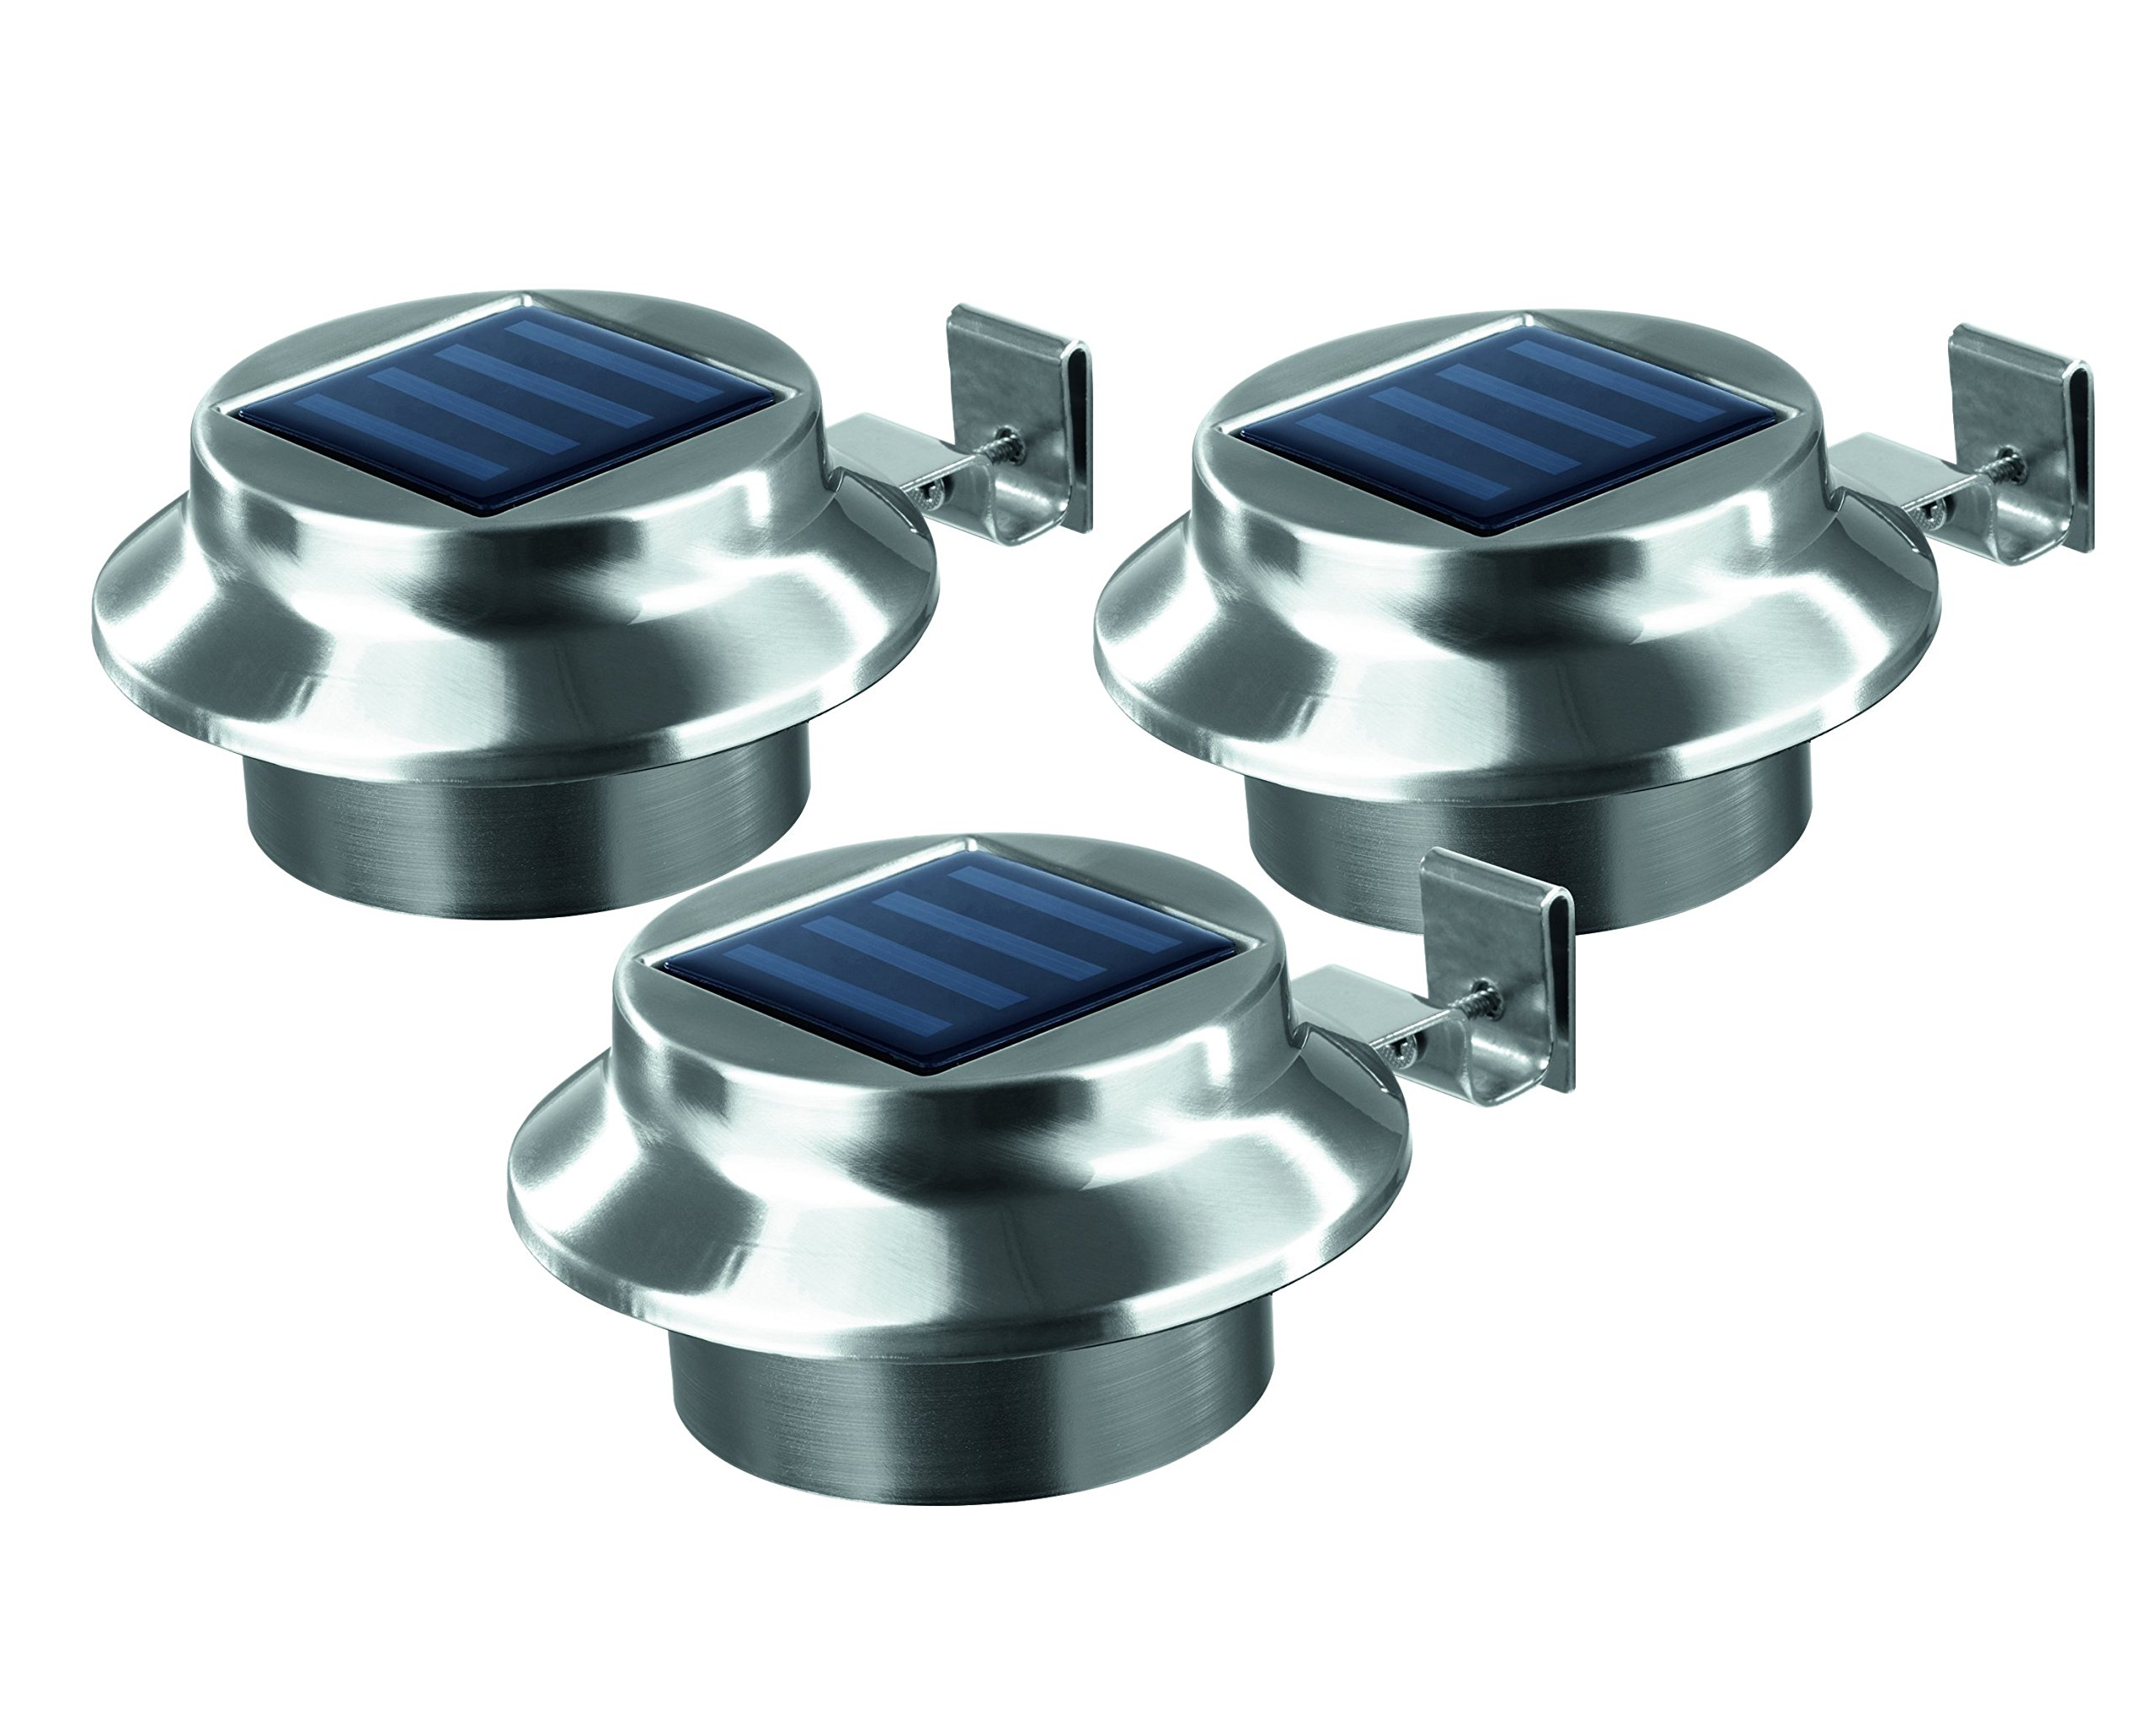 Solar Gutter-Lights | Outdoor Lighting, Set of 3 | Stainless Steel | Weather resistant, Easy to install, Wireless, bright